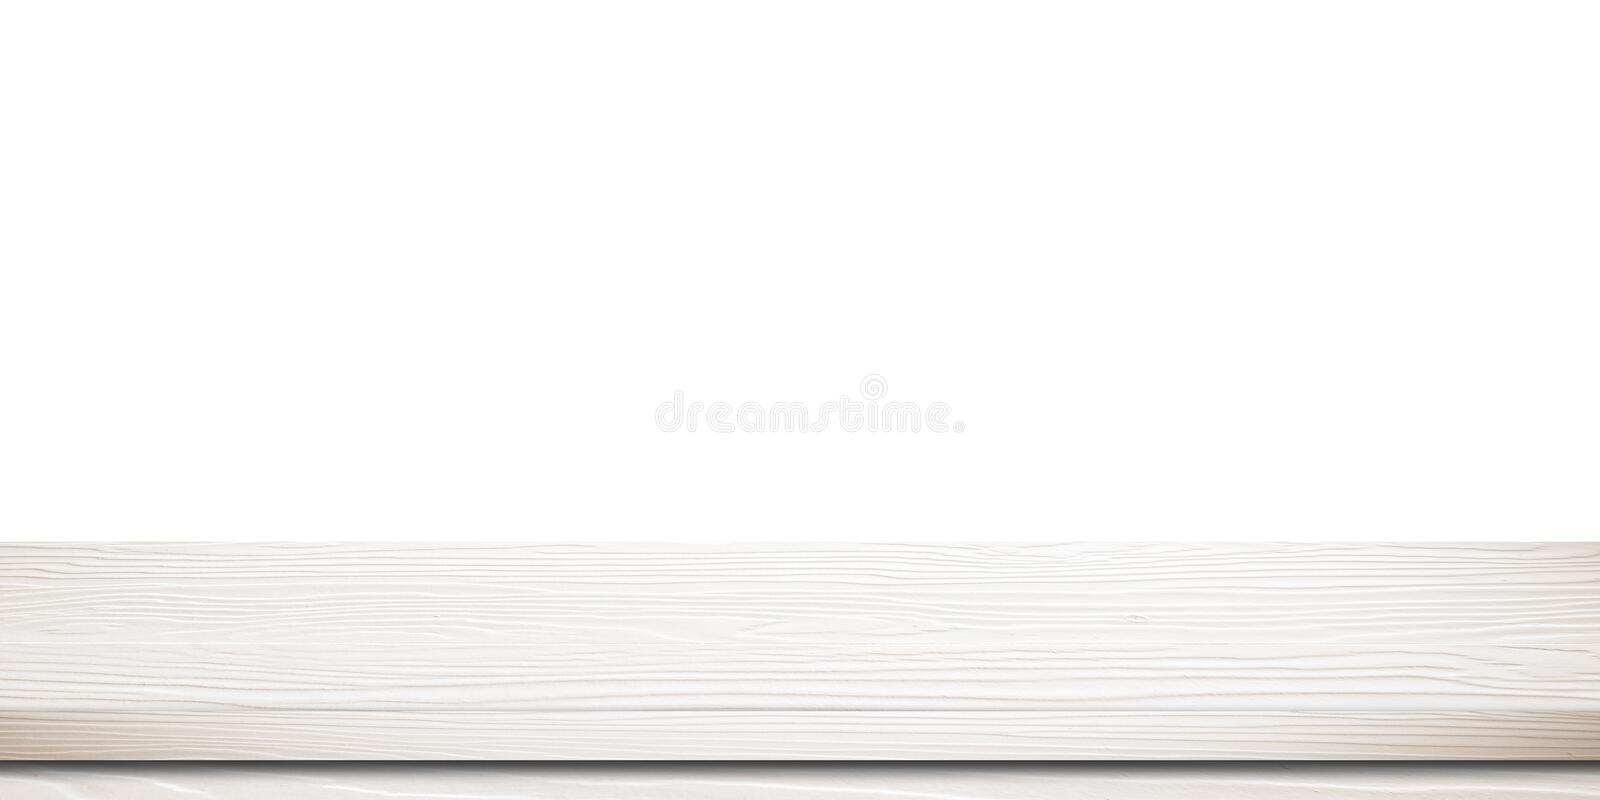 Empty white wooden table, isolated on white background, banner, table top, shelf, counter design for product display montage stock photos